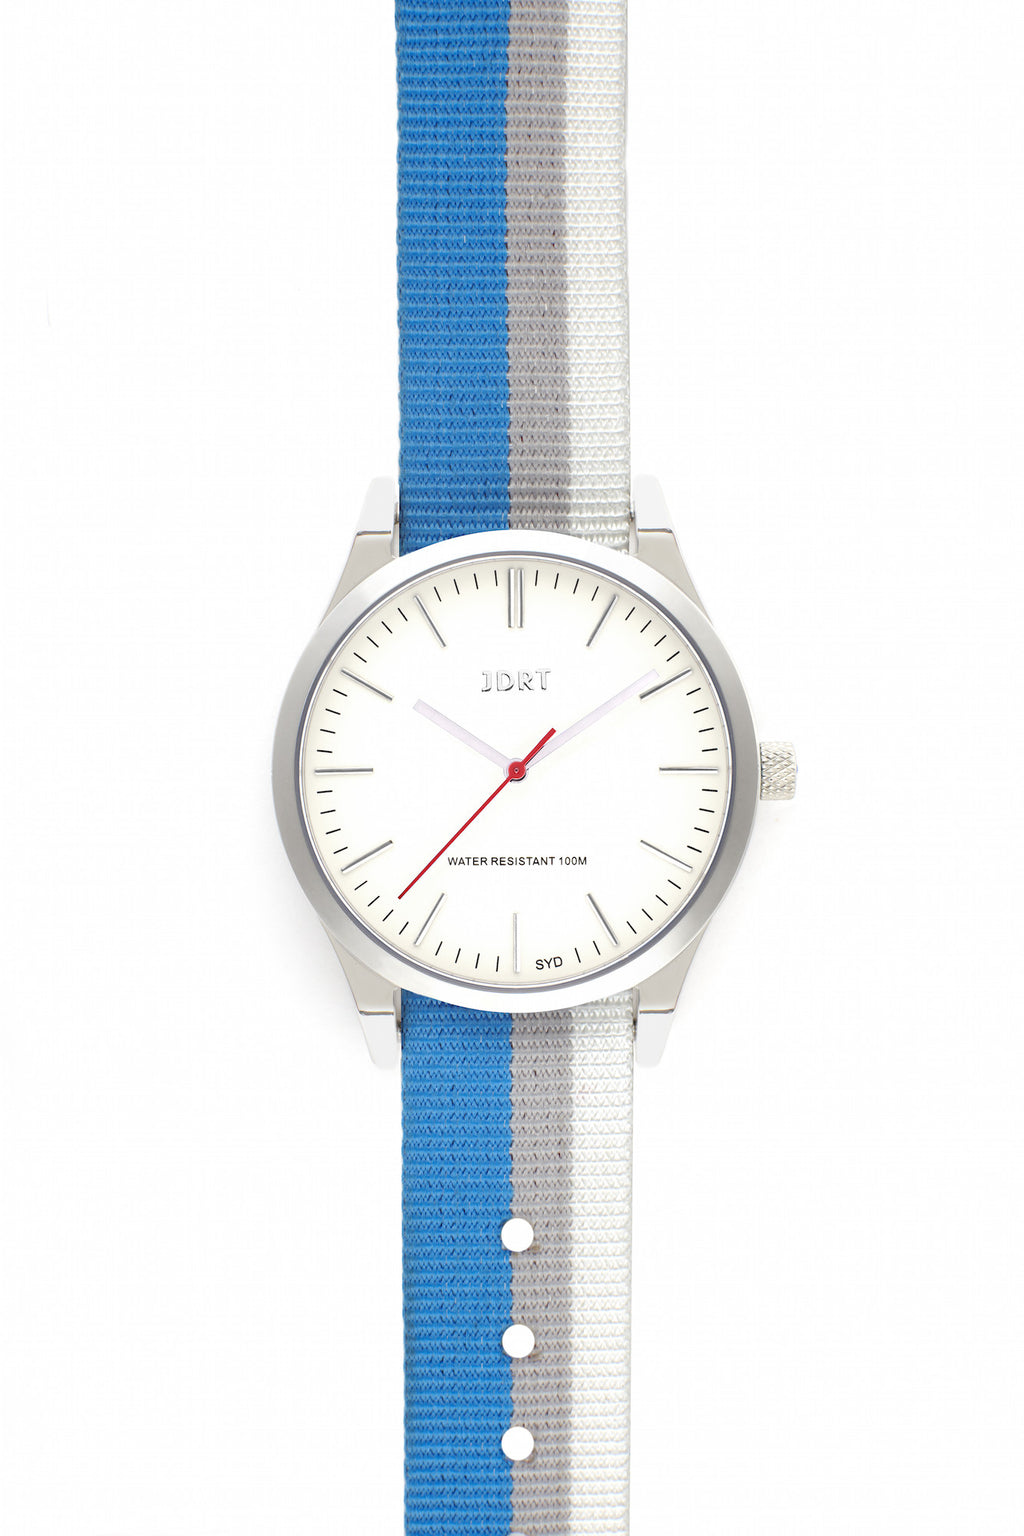 Antique White Face with Bondi NATO Watch Band